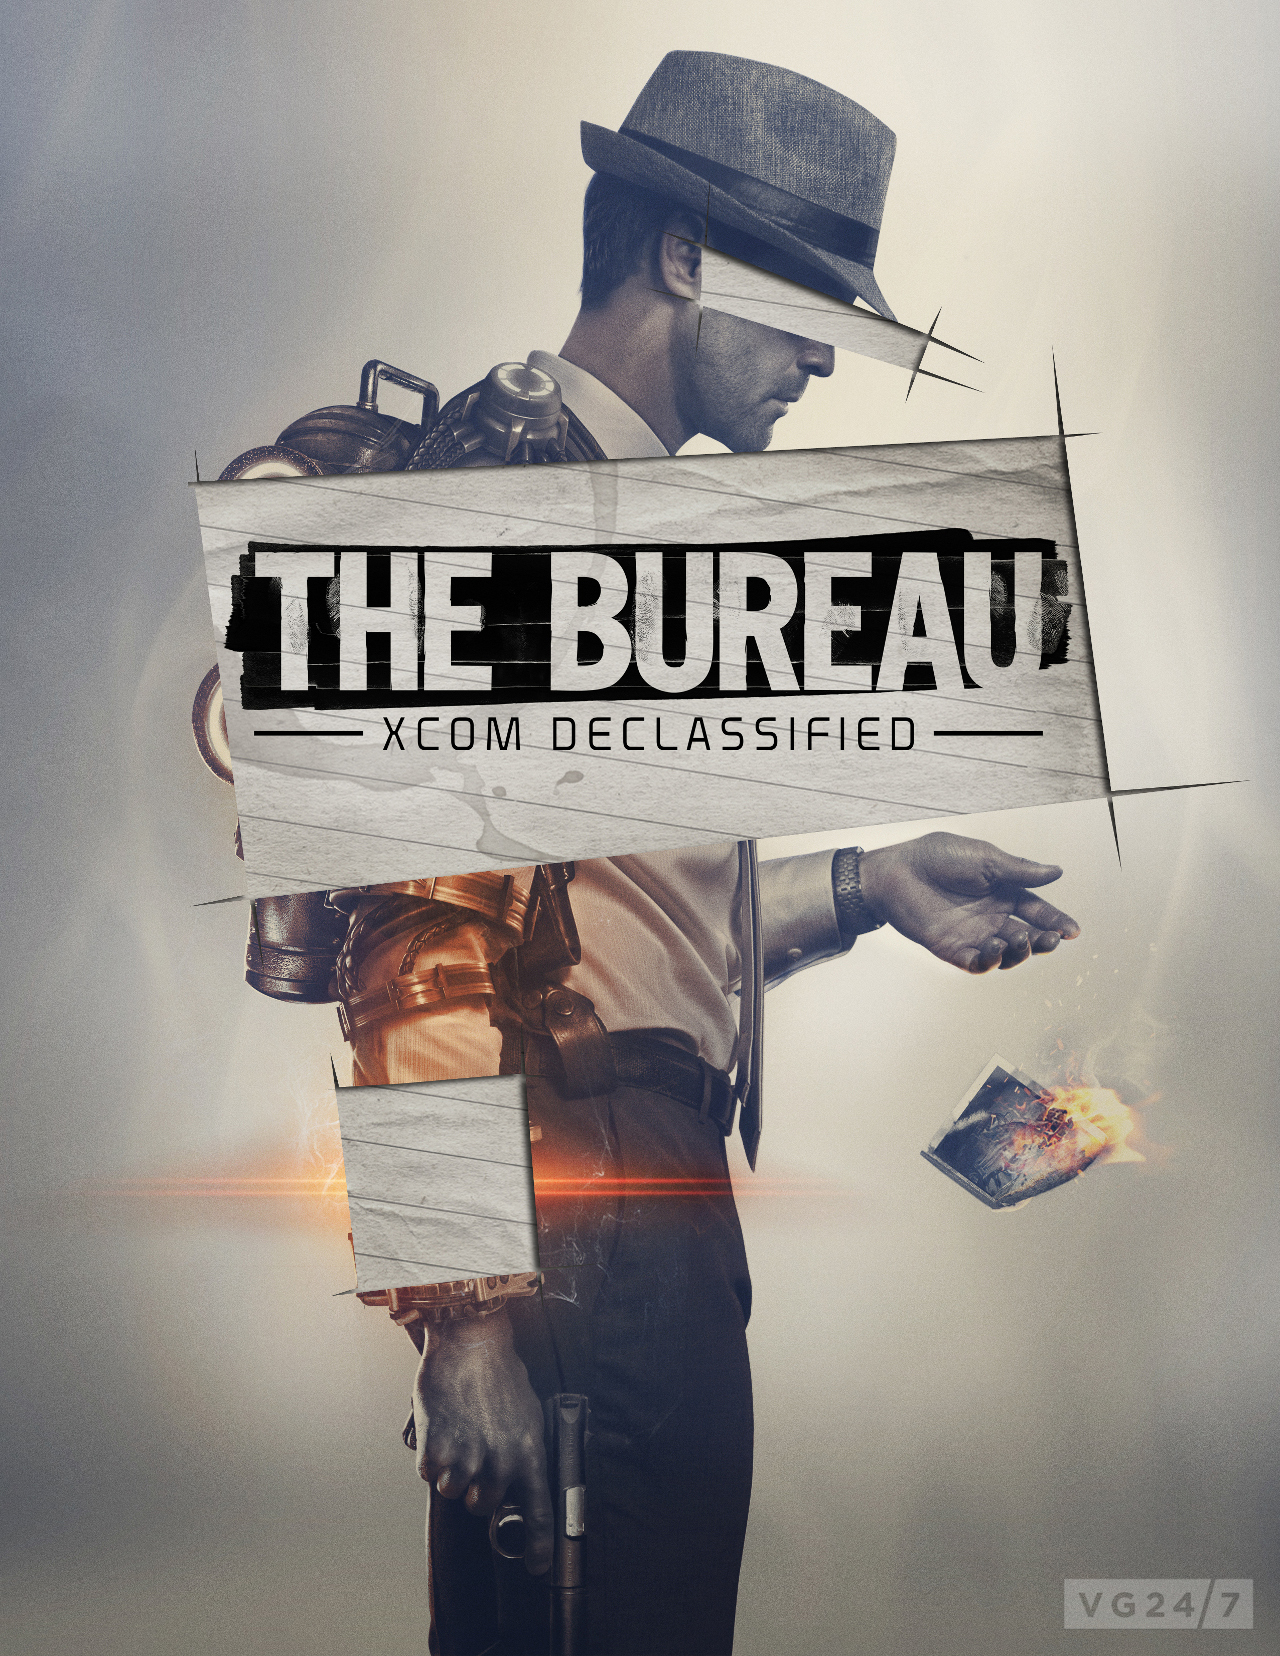 The bureau xcom declassified review for Bureau xcom declassified